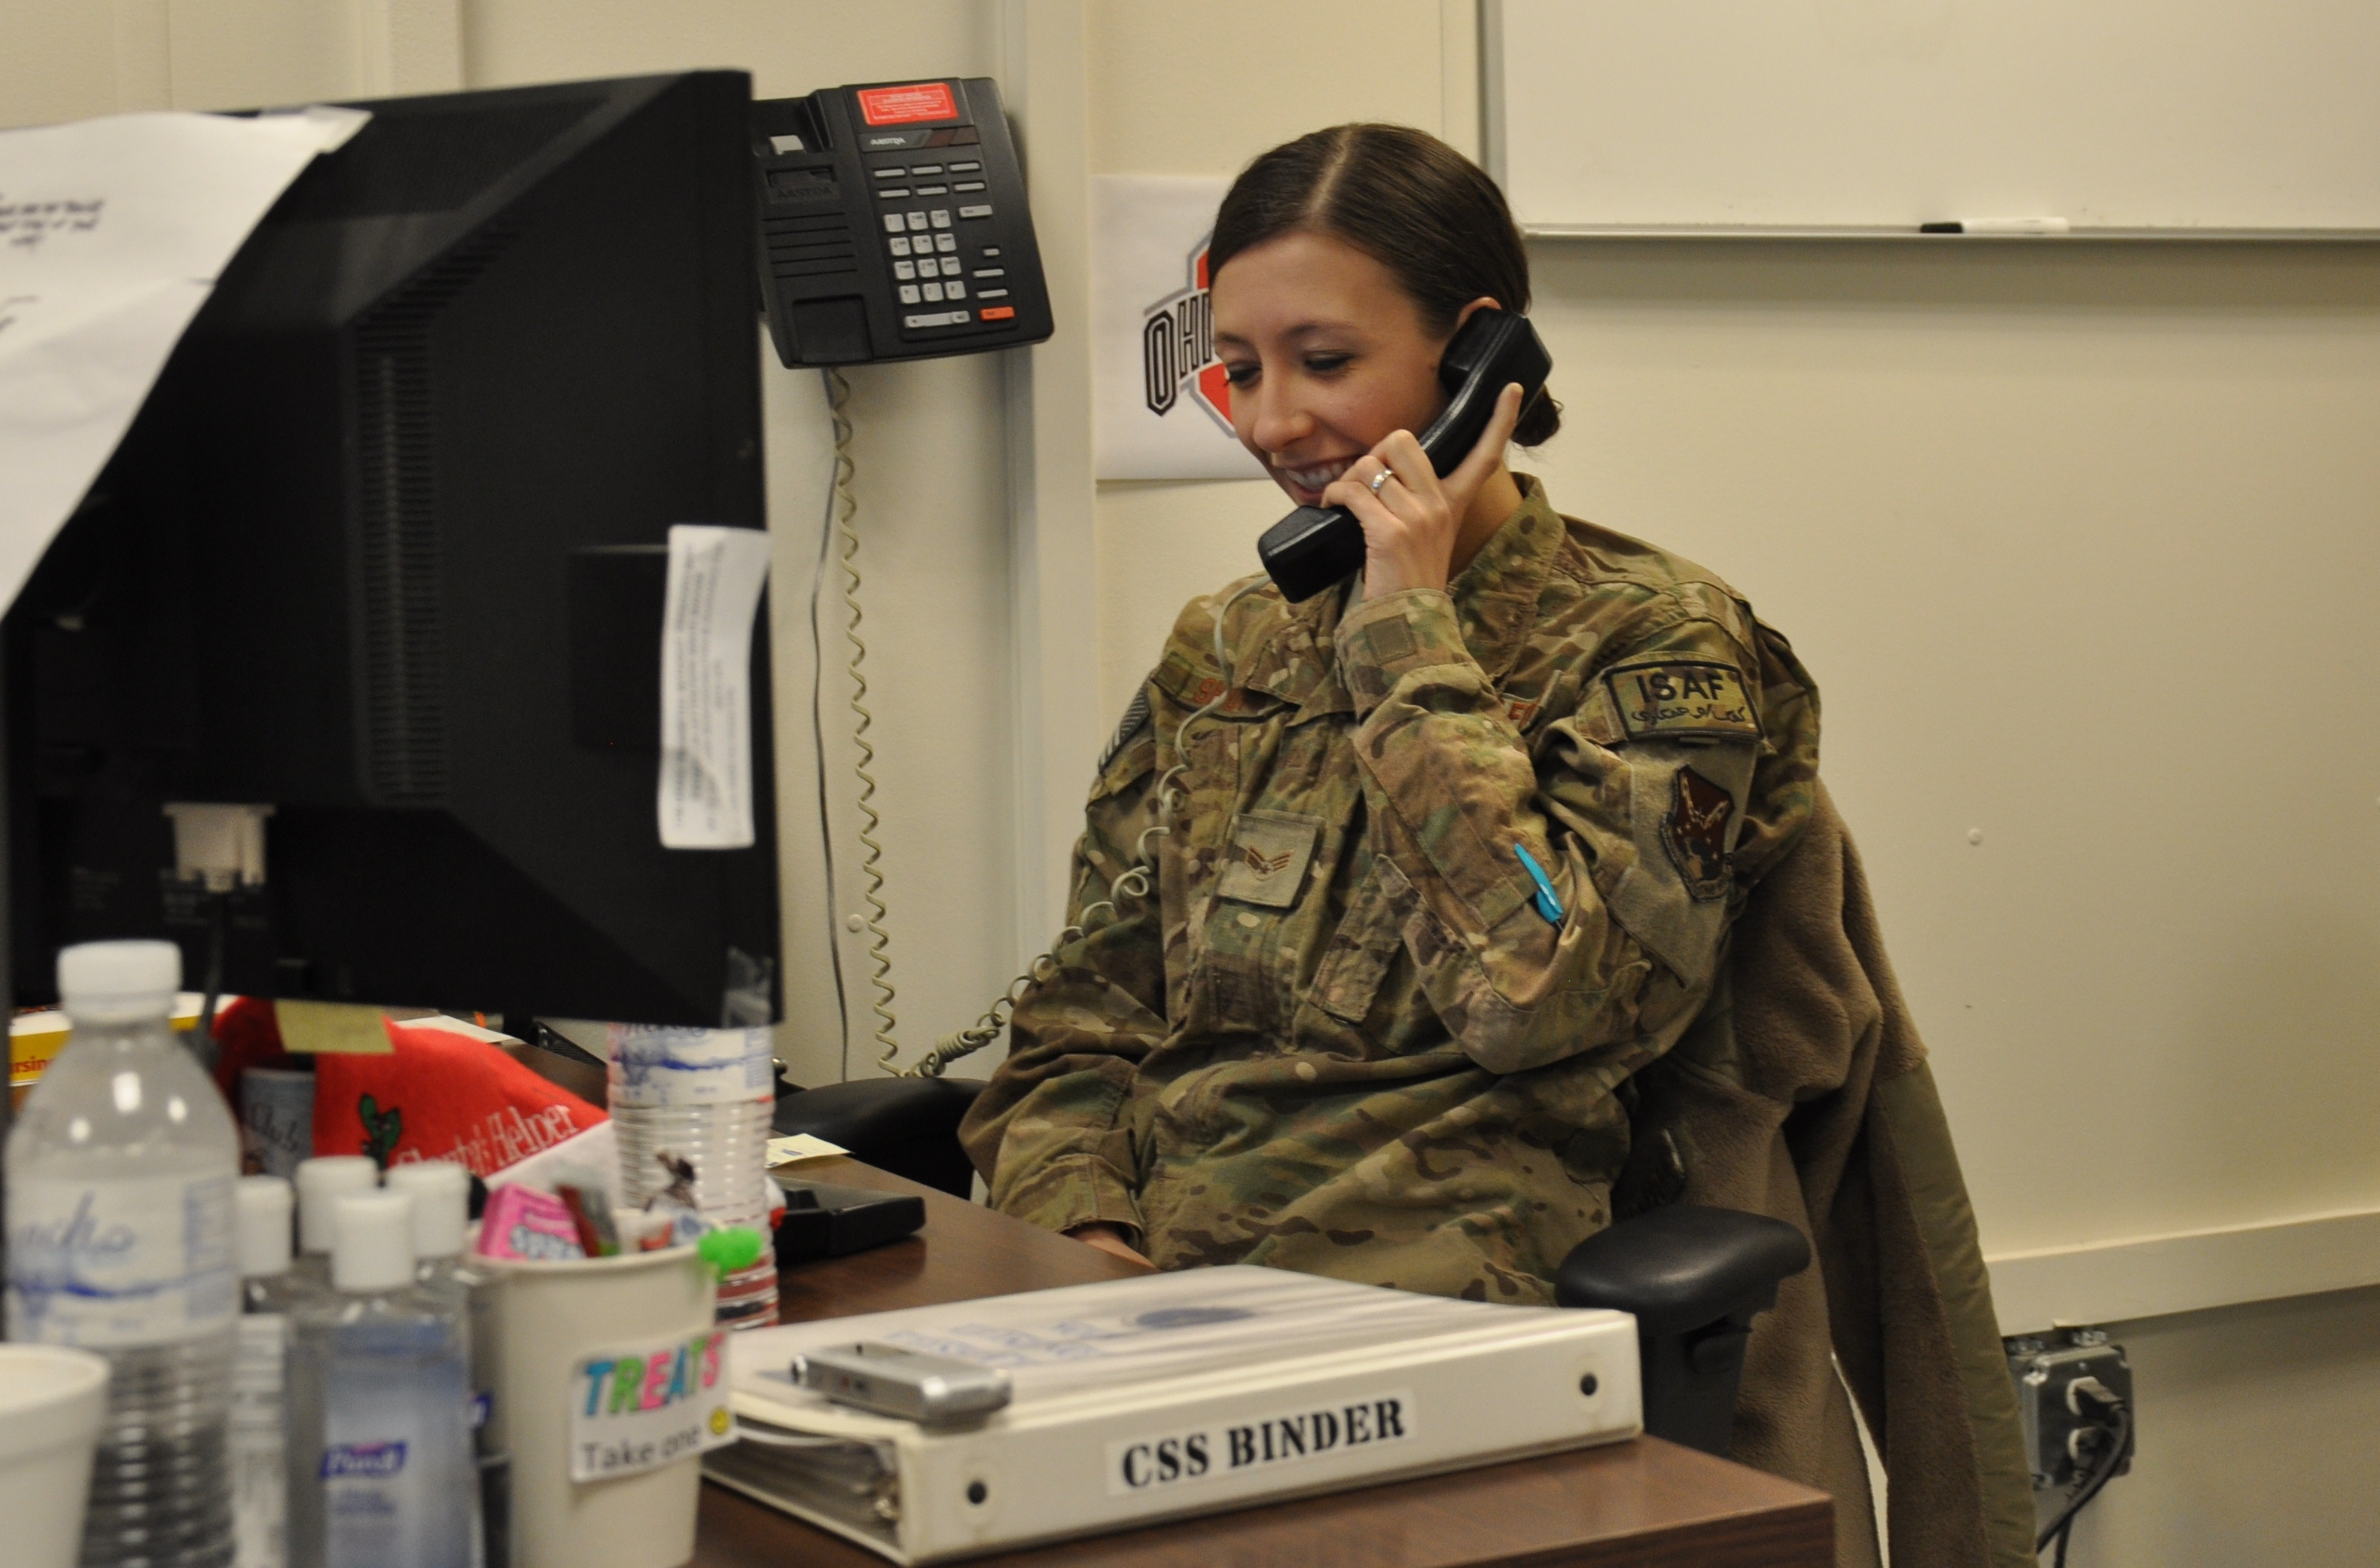 Deployed Airman receives Christmas phone call from President Obama ...